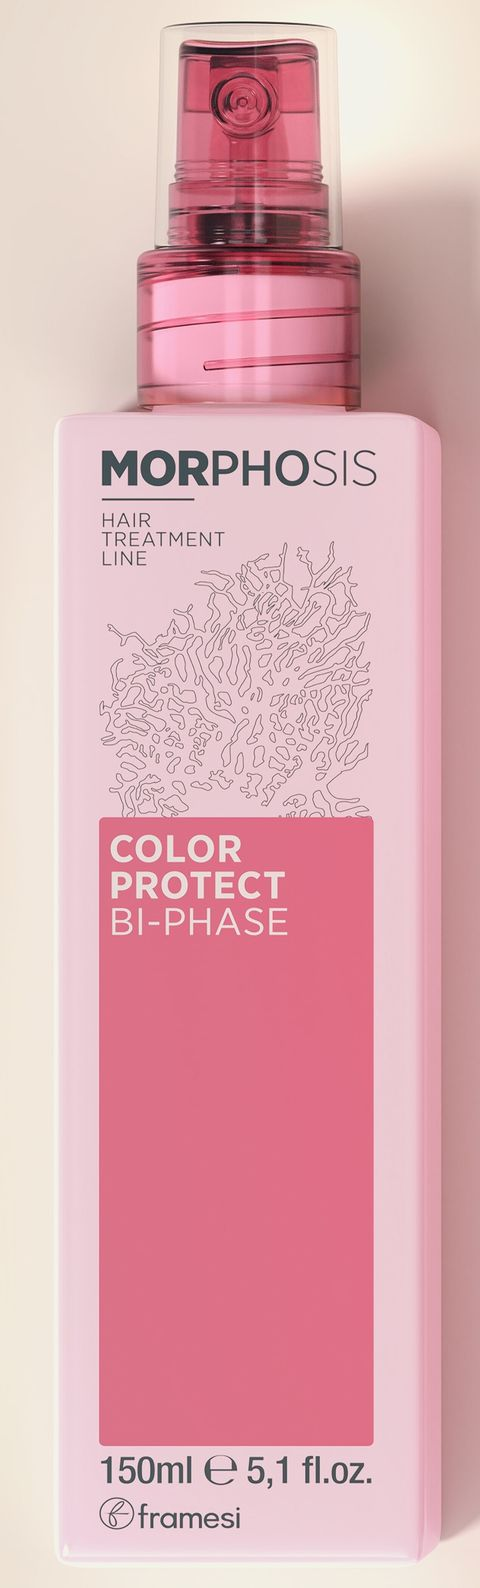 Text, Pink, Material property, Font, Plant, Paper, Magenta,